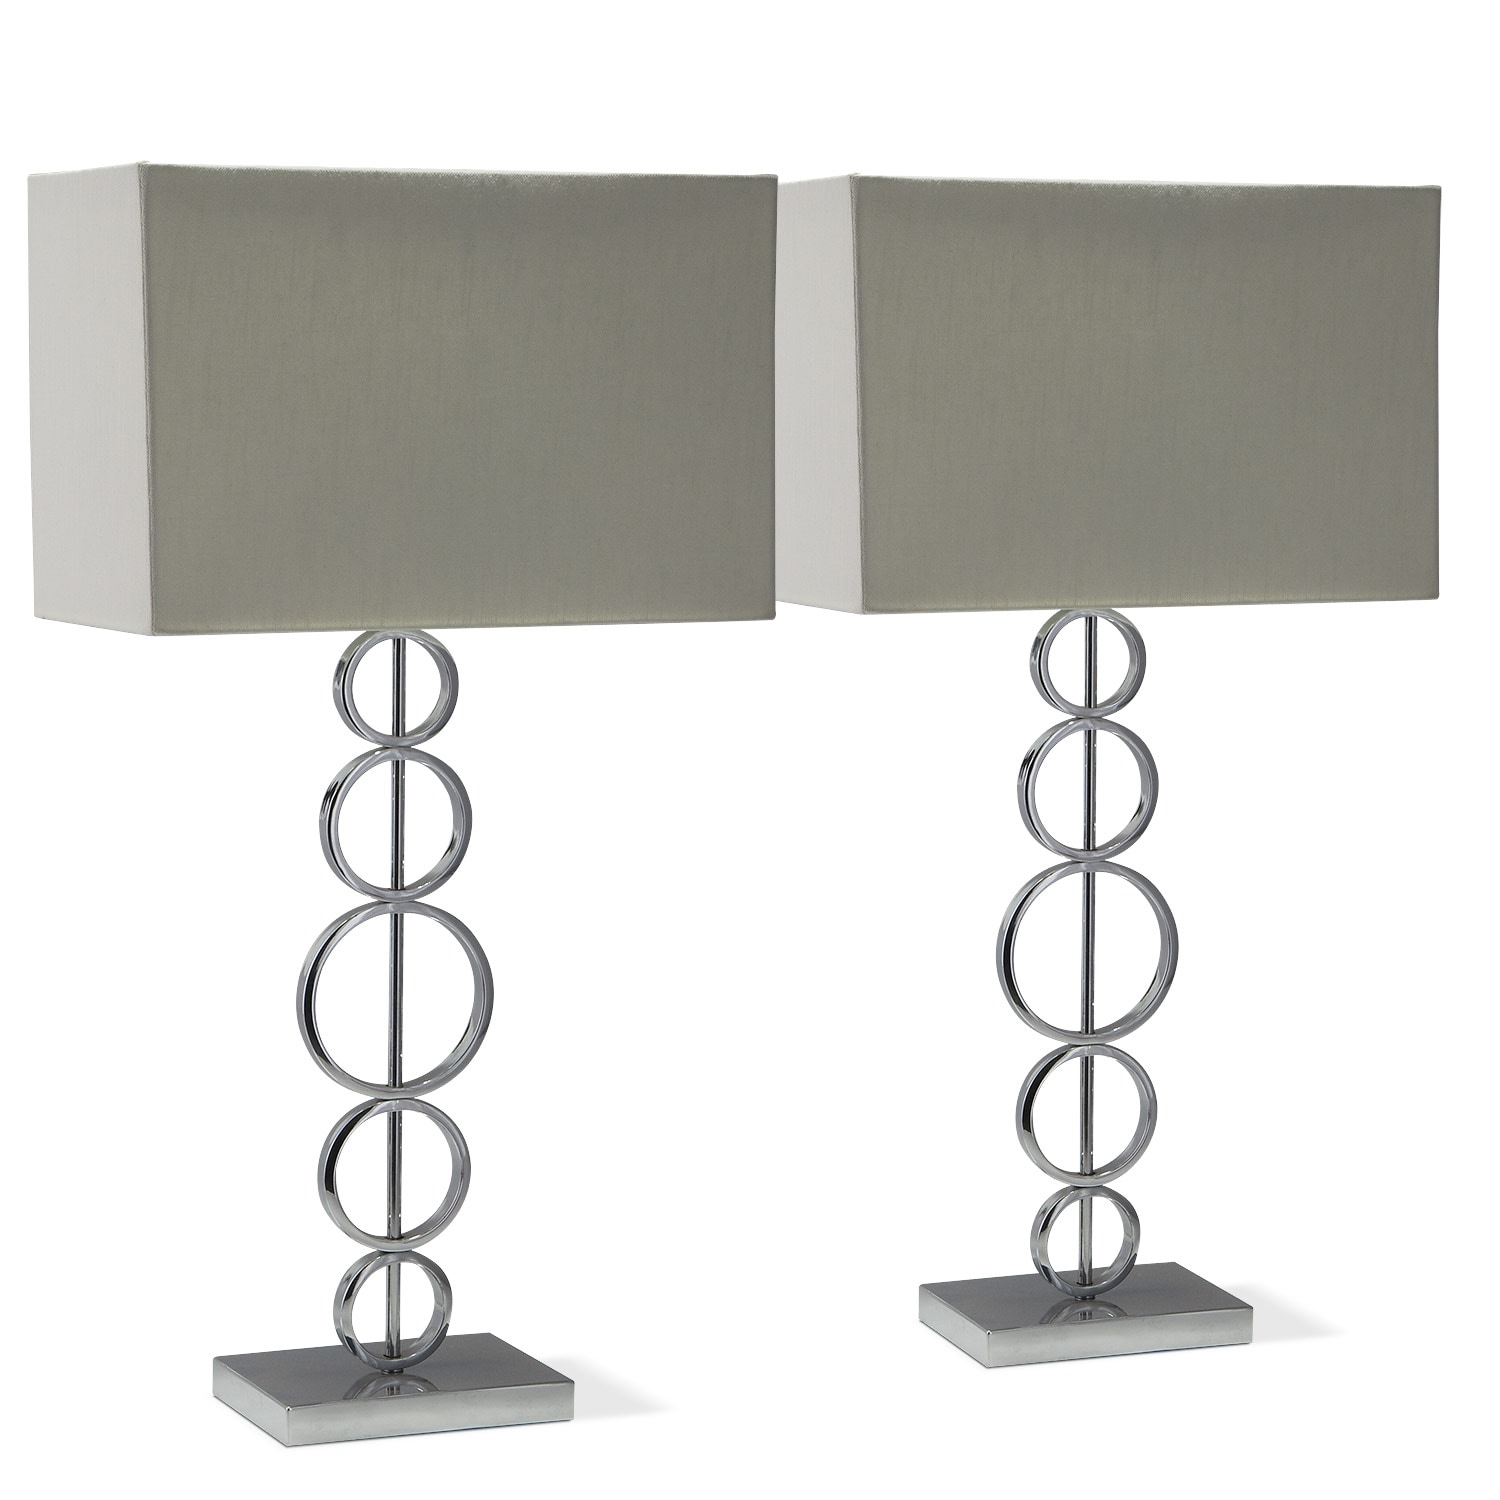 Home Accessories - Chrome Circle 2-Pack Table Lamp Set